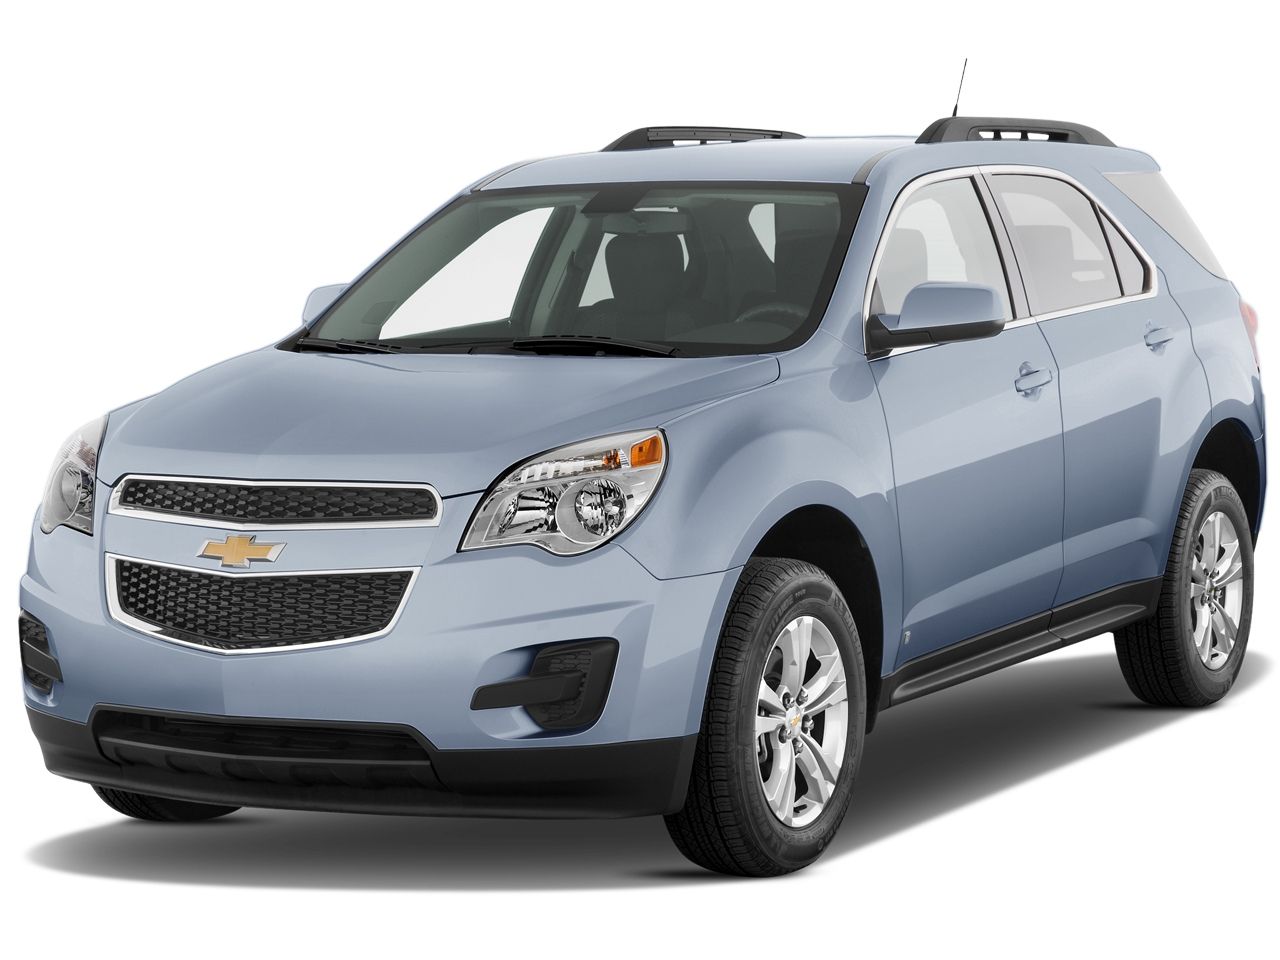 Equinox 2012 chevy equinox ls : 100+ [ 2012 Chevy Equinox Owners Manual ] | 2017 Chevrolet Equinox ...